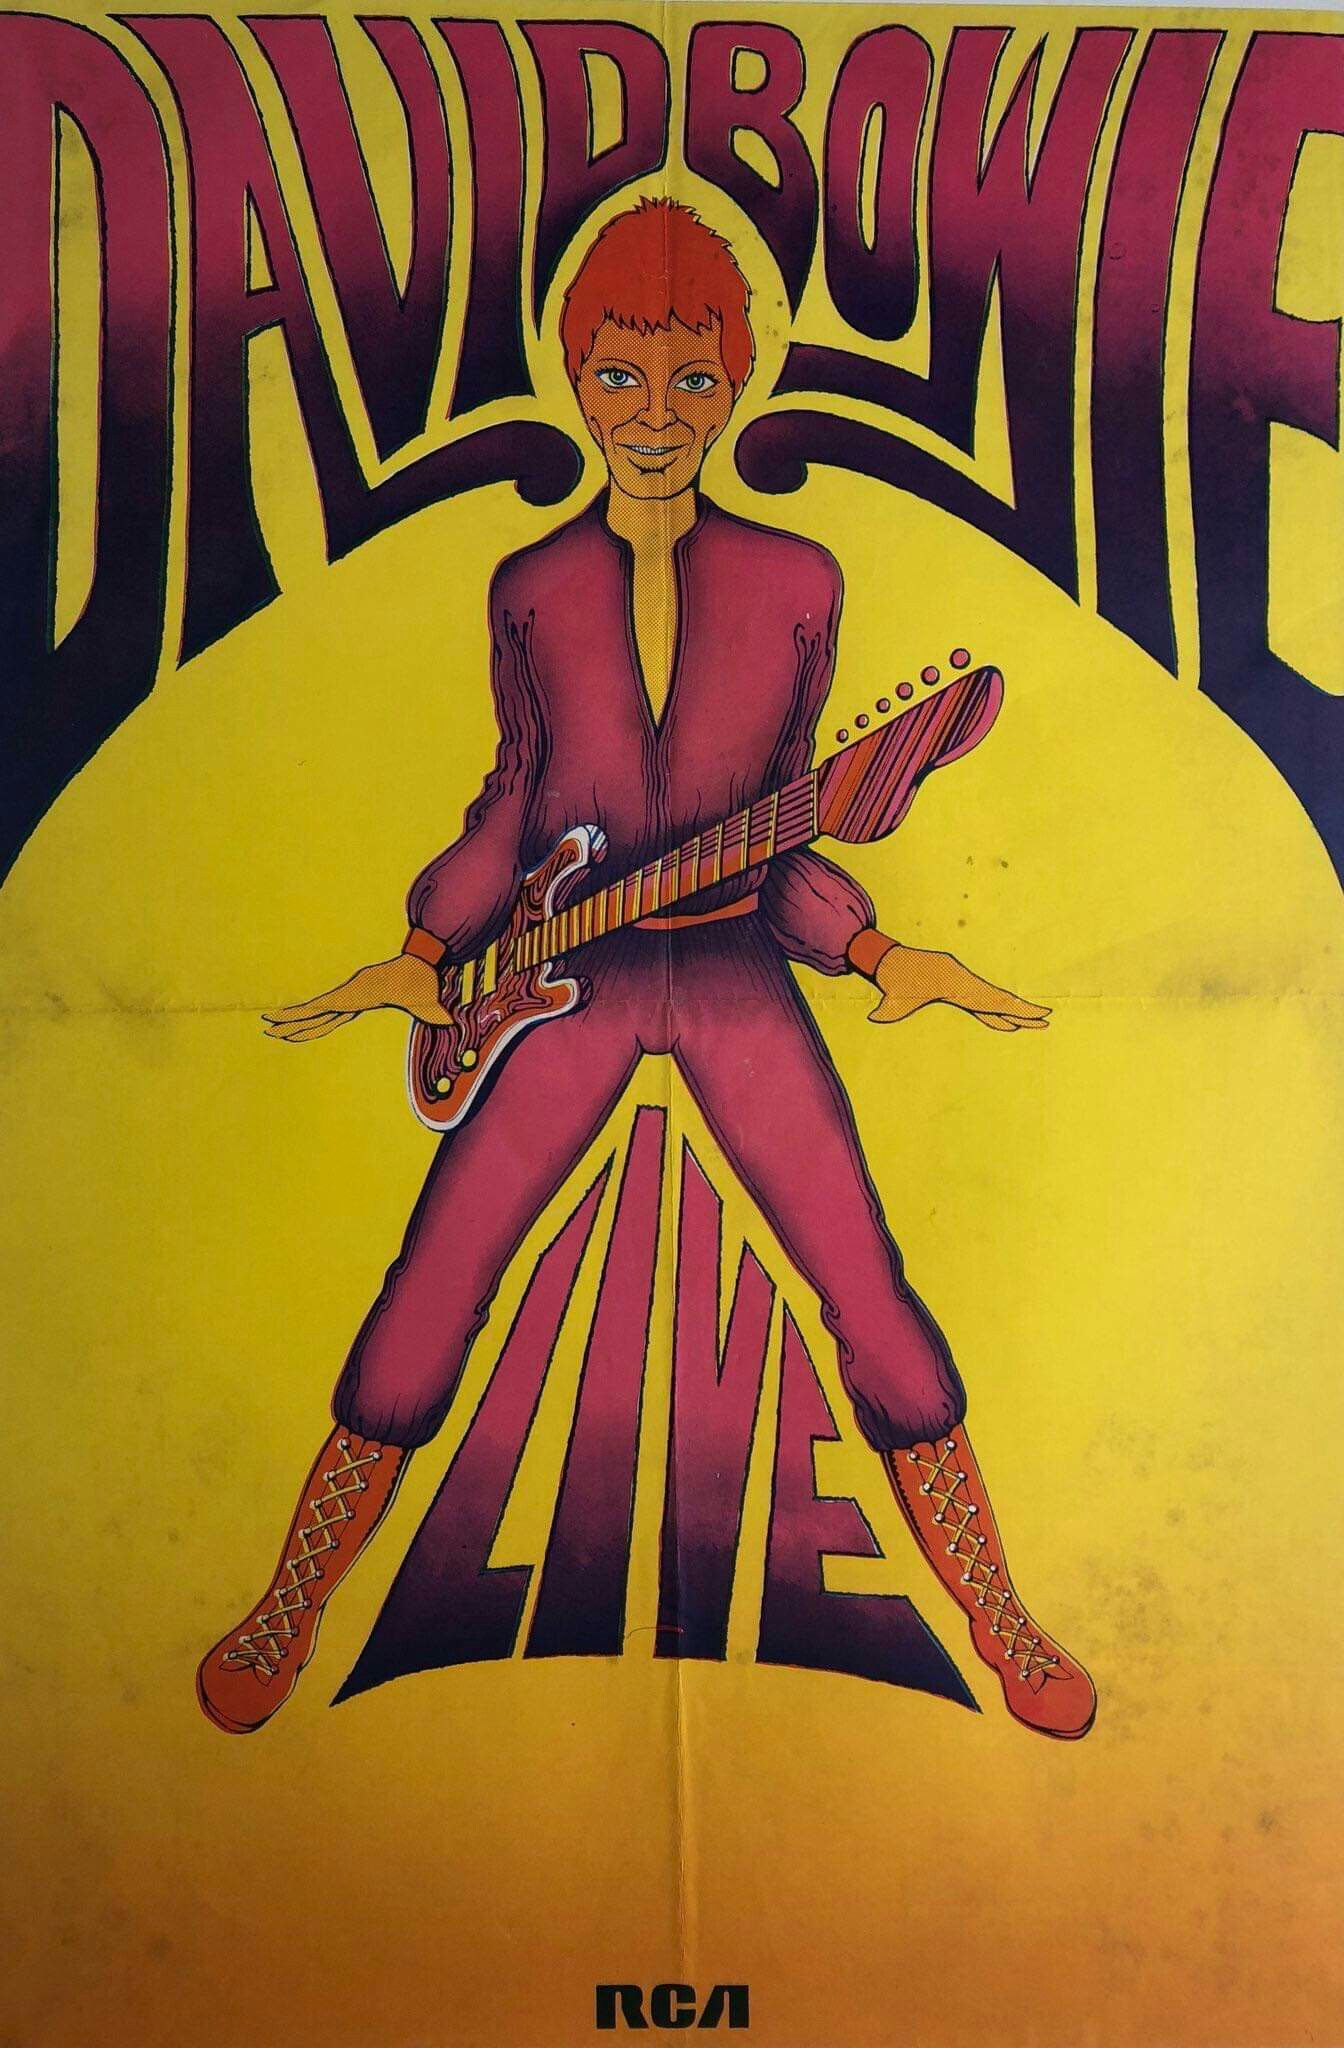 Pin by Steven A Brown on David Bowie Miscellaneous